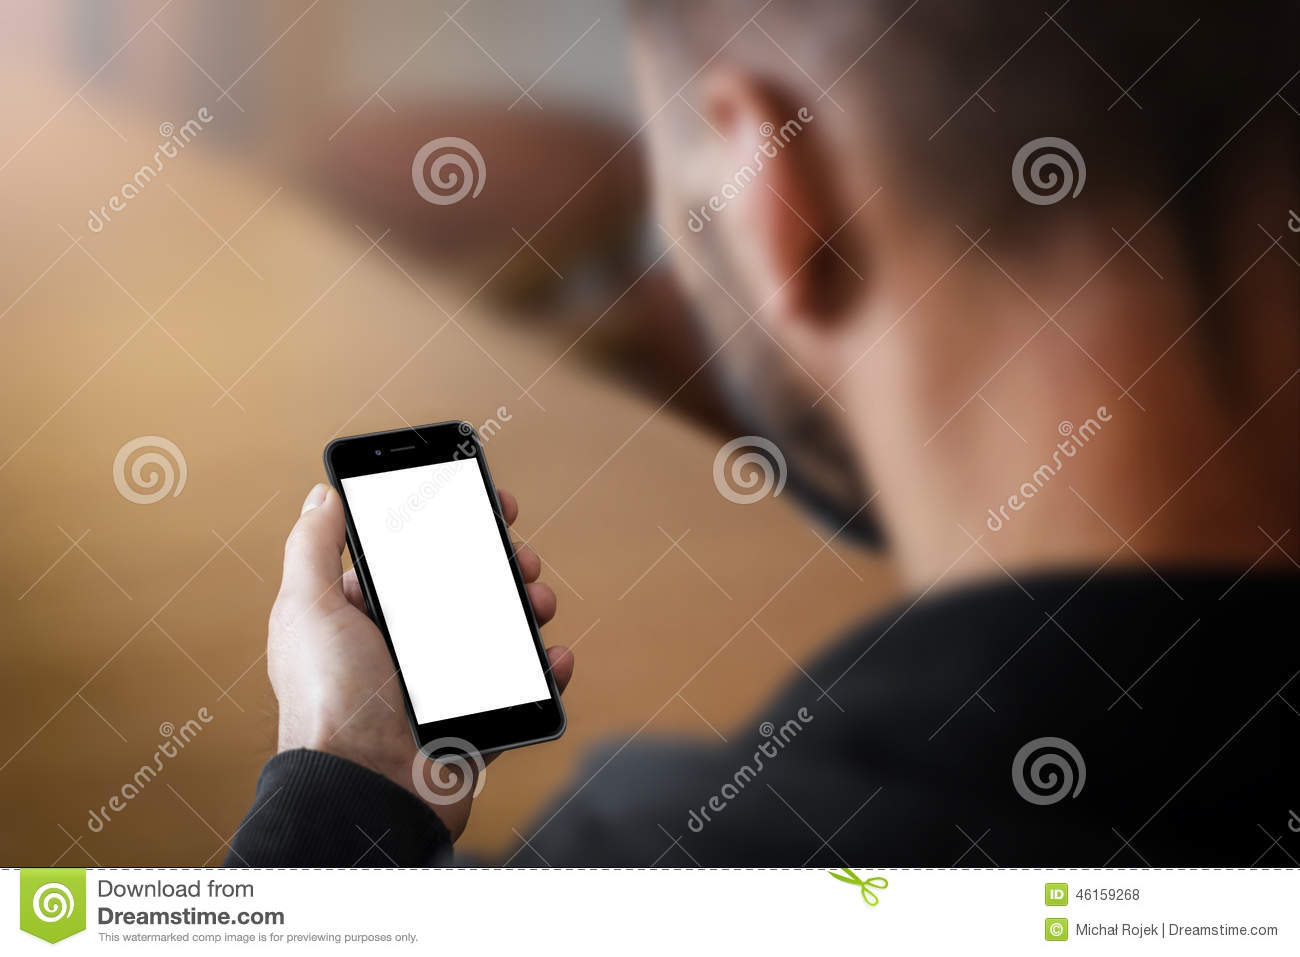 Man holding a smartphone with blank screen.